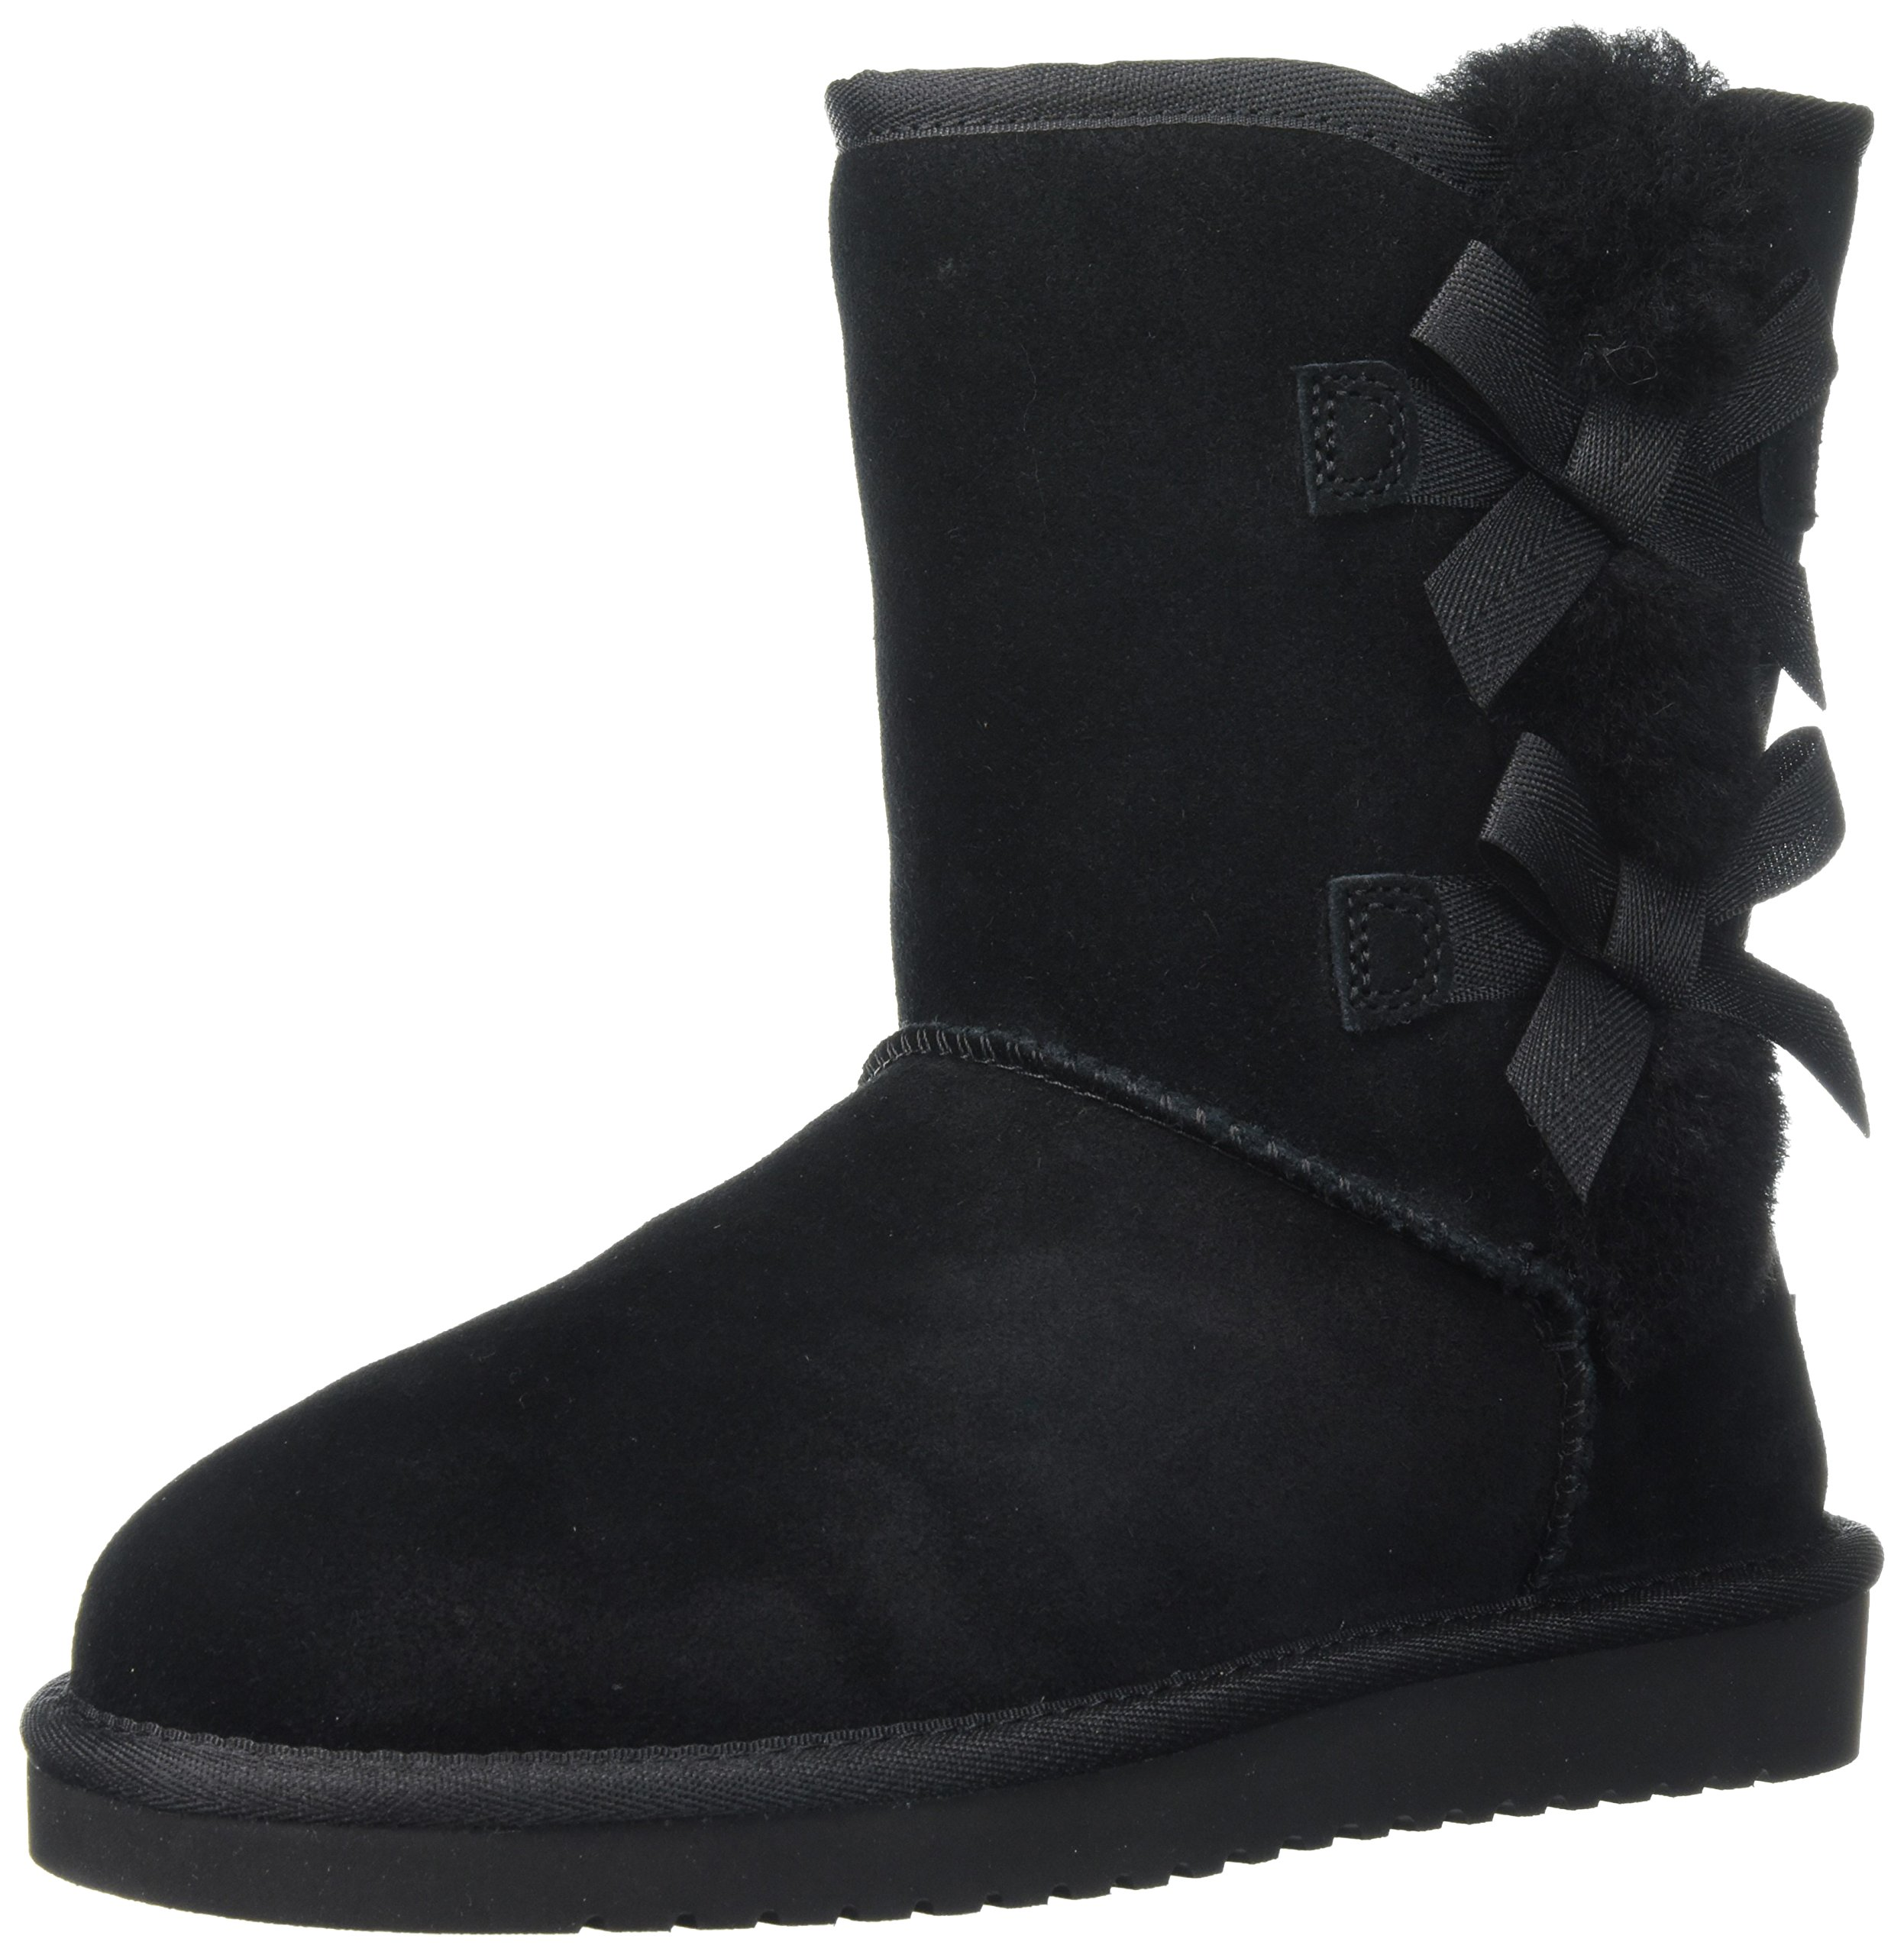 Koolaburra by UGG Women's Victoria Short Fashion Boot, Black/Black/Black, 09 M US